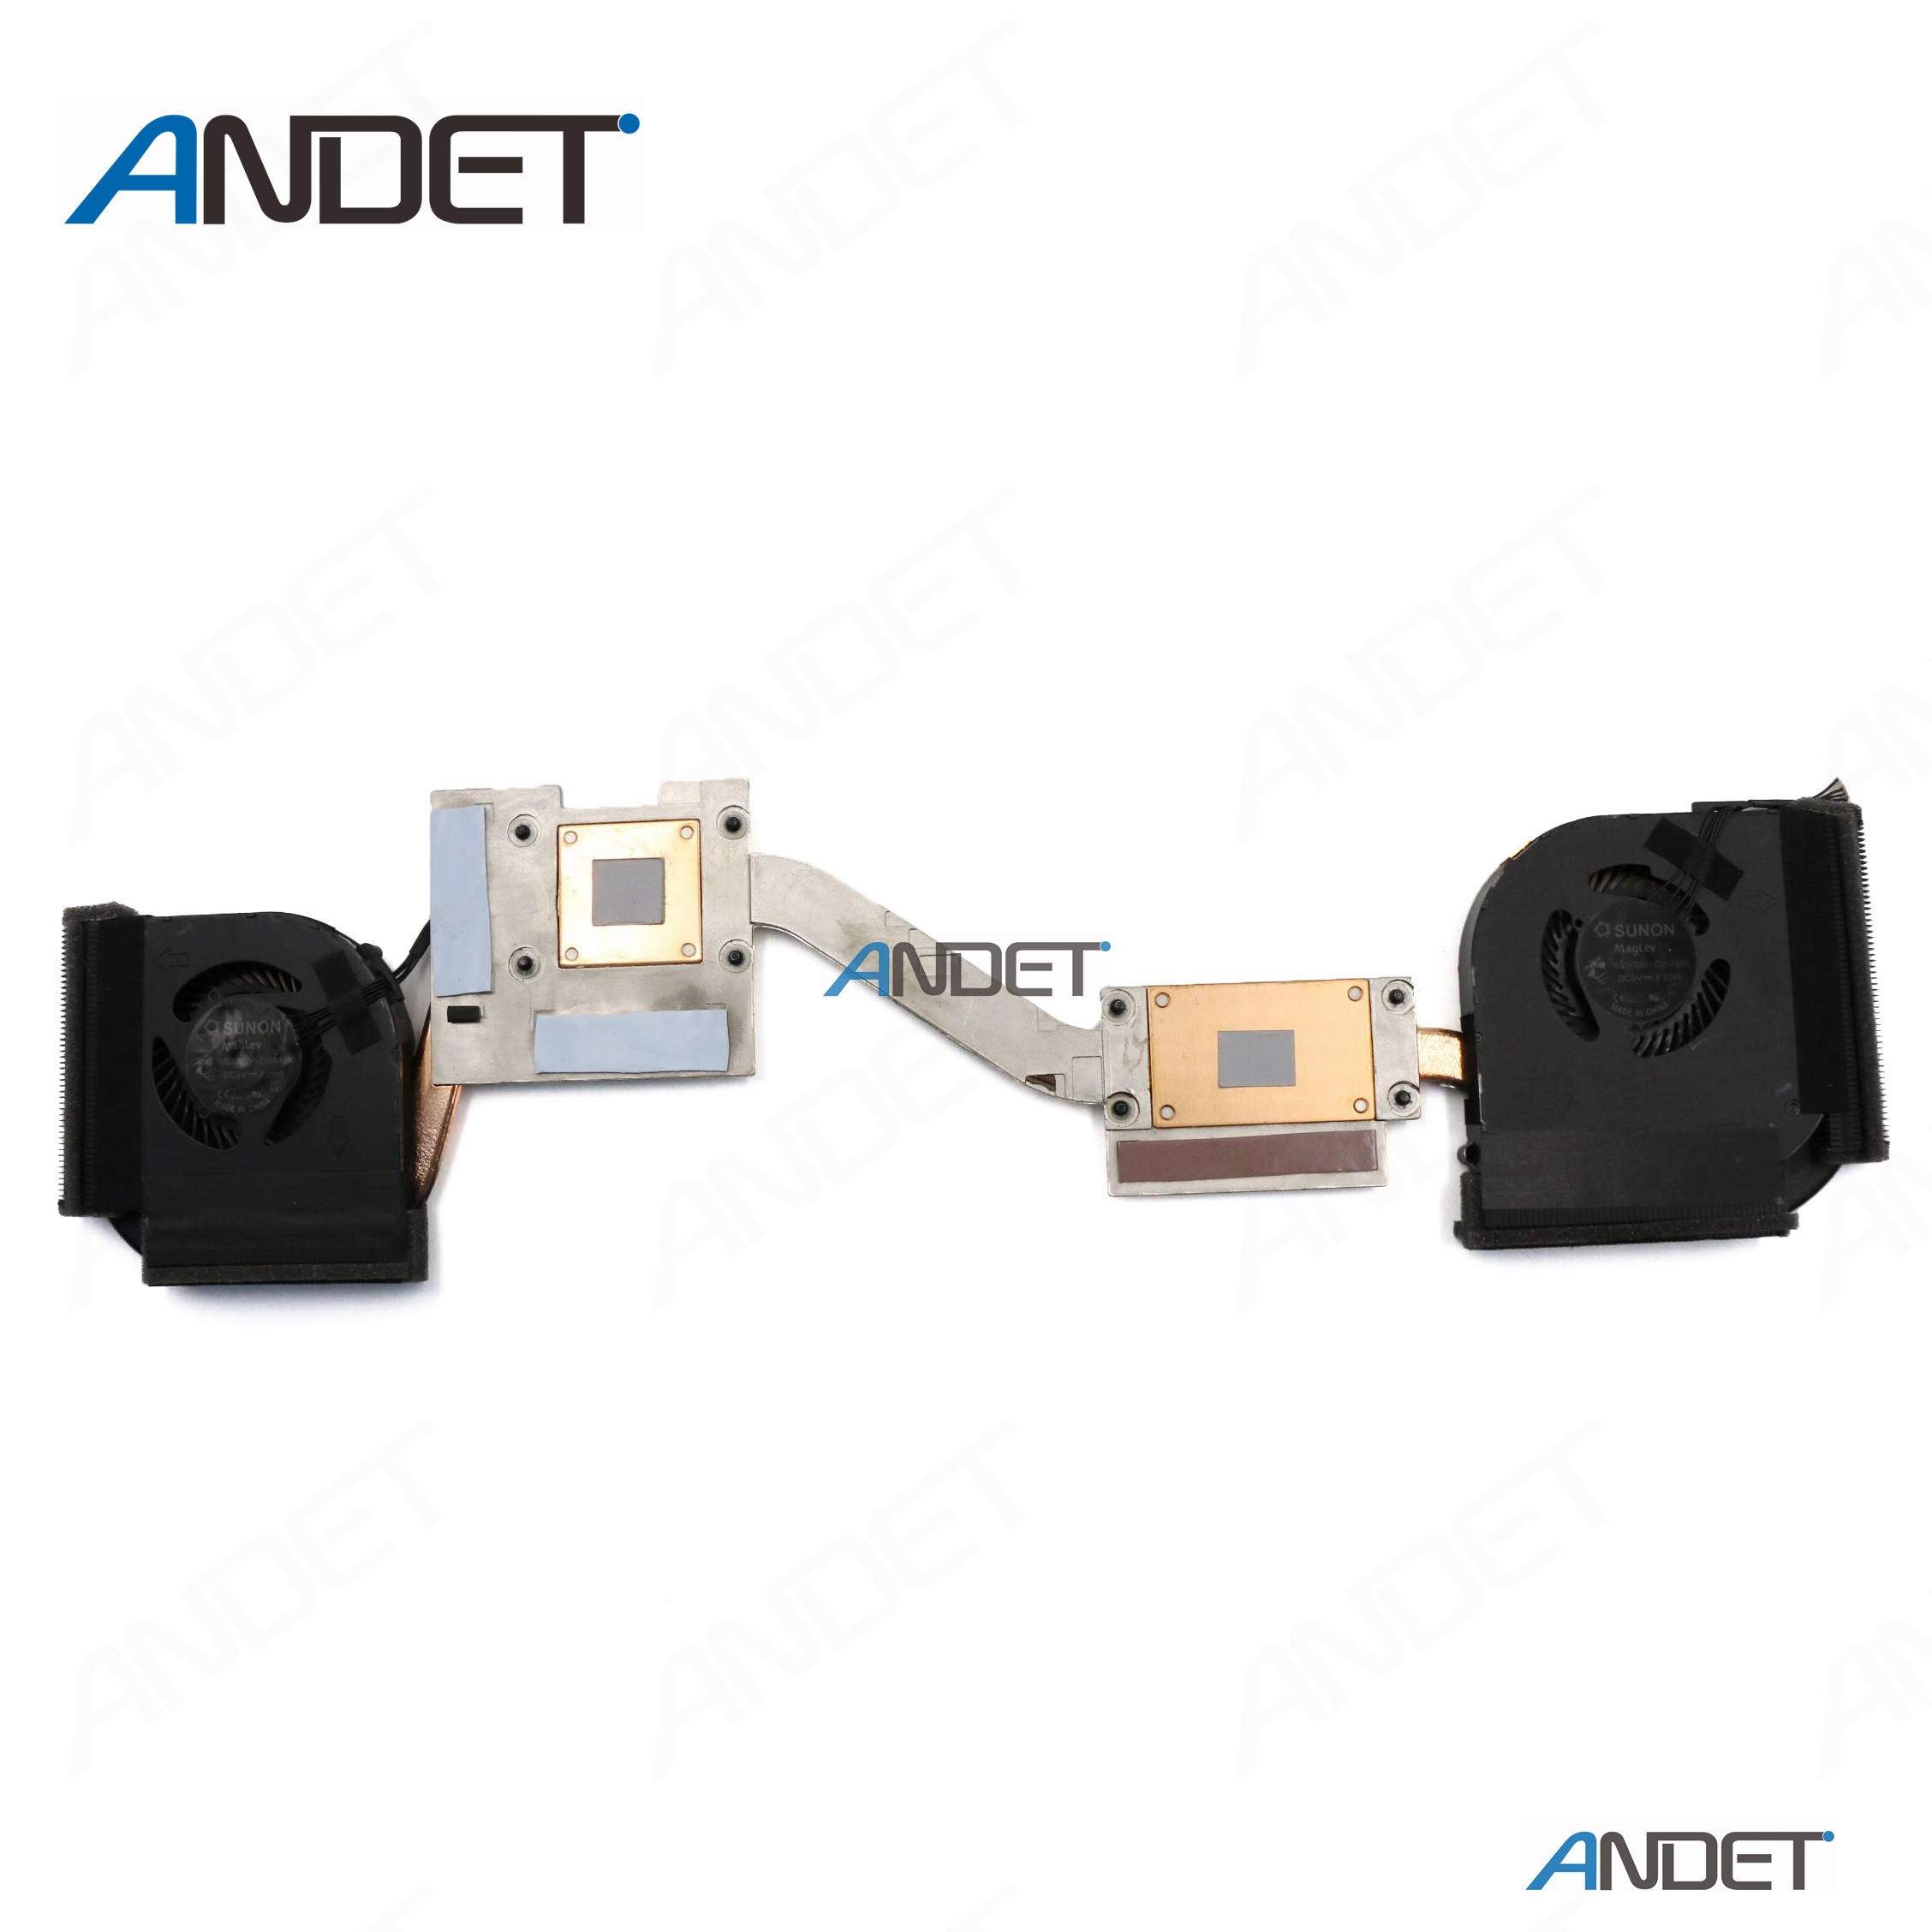 New Replacement for 01AY473 01AY472 for Lenovo Thinkpad T570 CPU Cooling Heatsink and Fan UMA